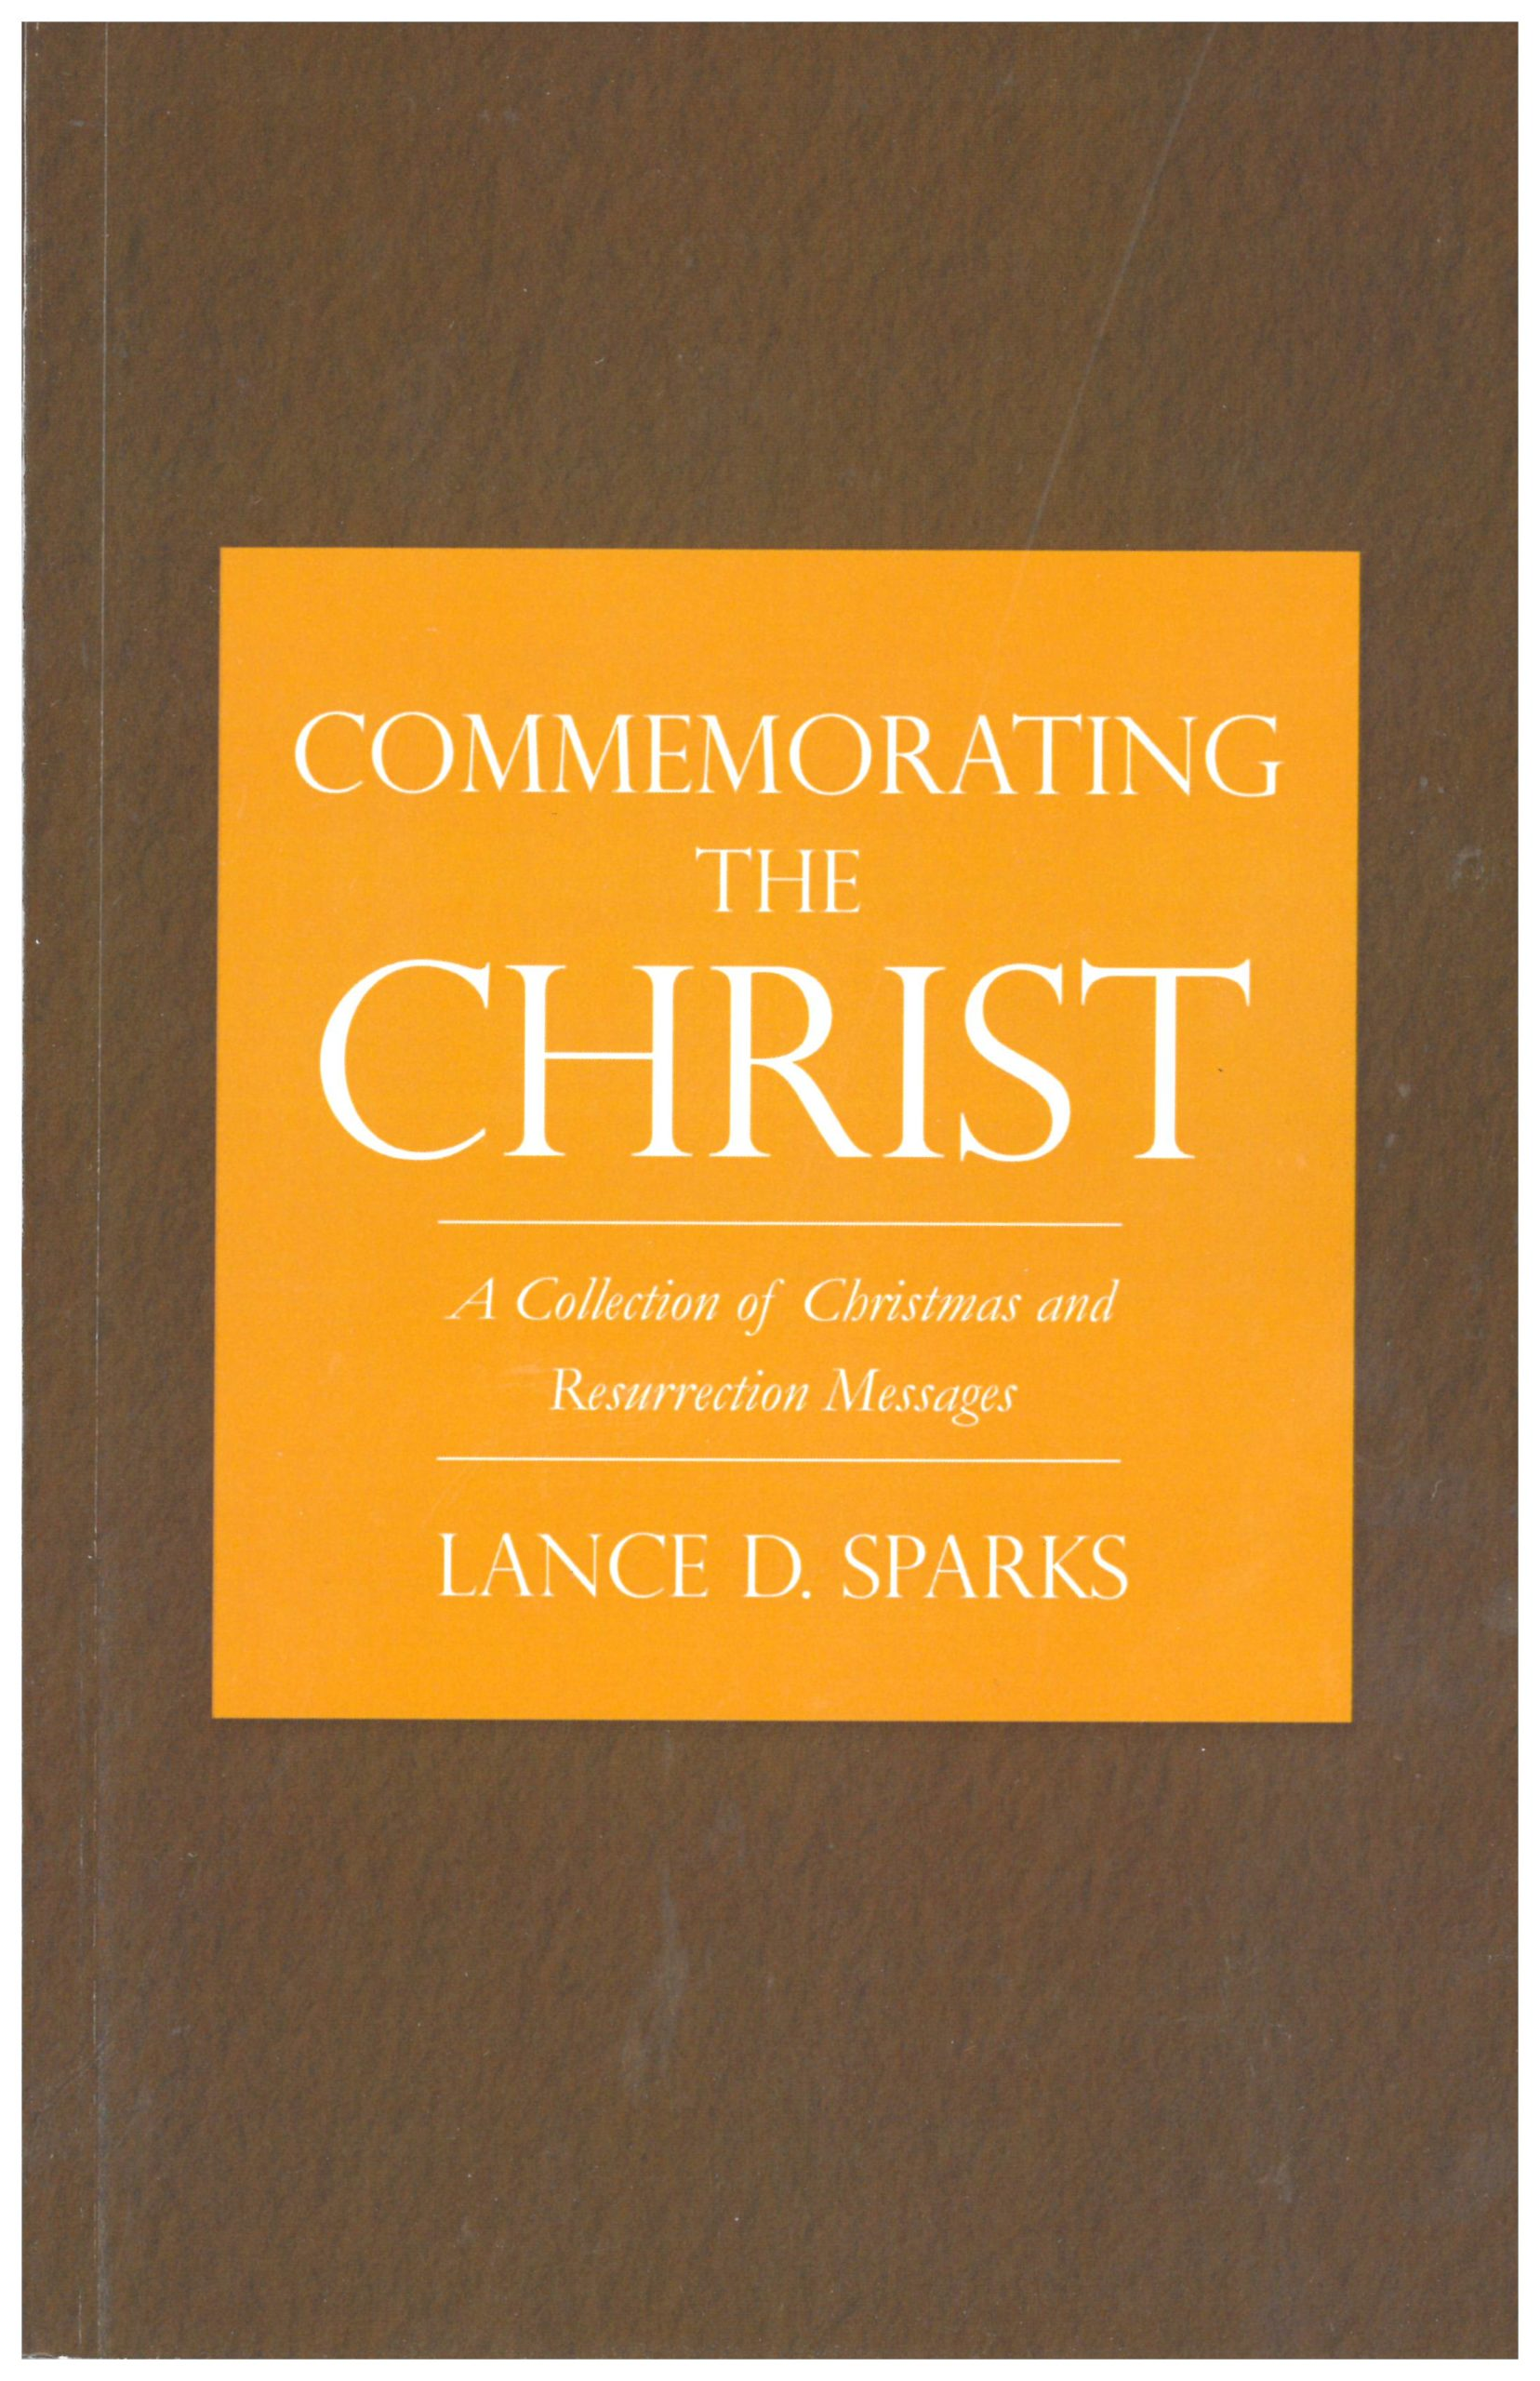 Commemorating the Christ